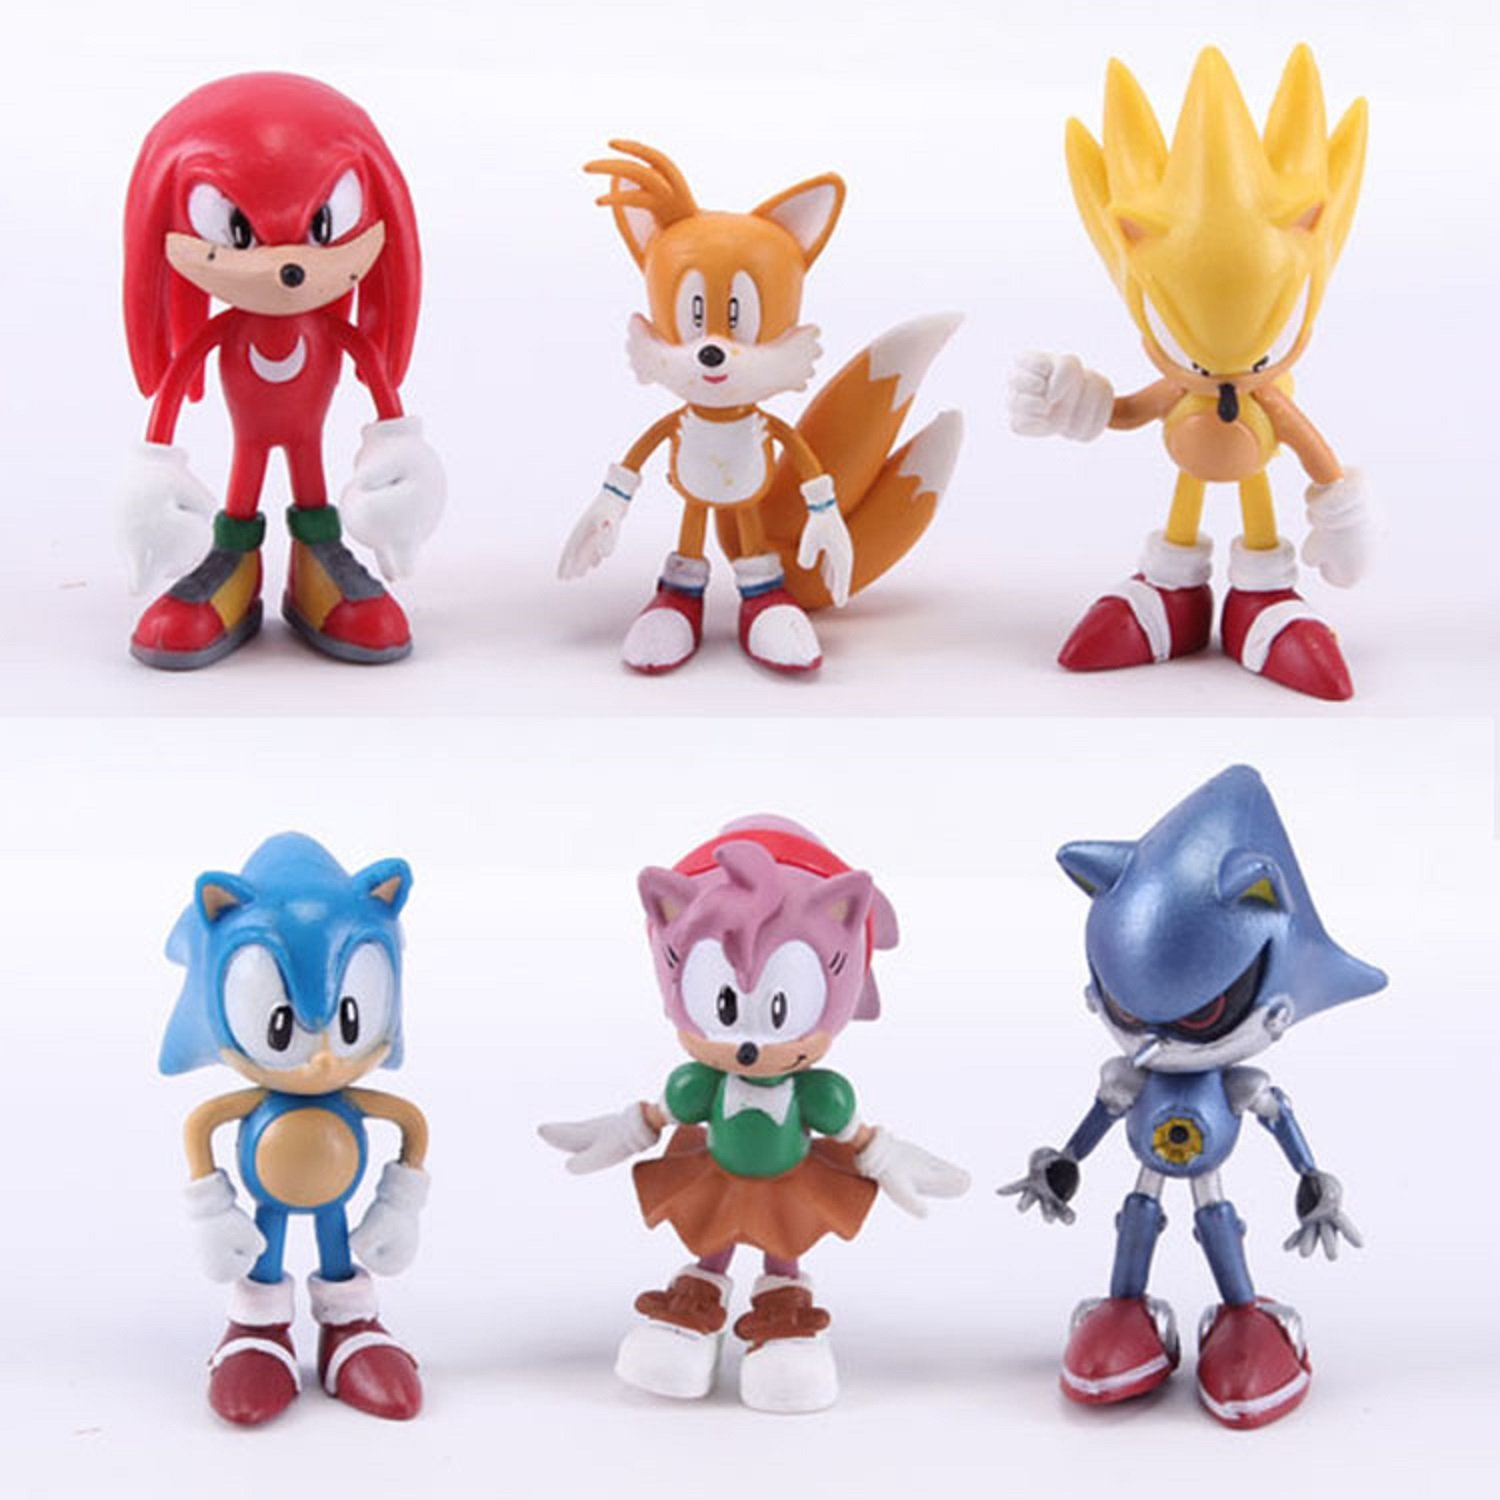 Max Fun Set of 6pcs Sonic the Hedgehog Action Figures, 5-7cm Tall Cake toppers- Classic Sonic, Amy, Super Sonic, Tails, Metal Sonic, and Knuckles by Max Fun